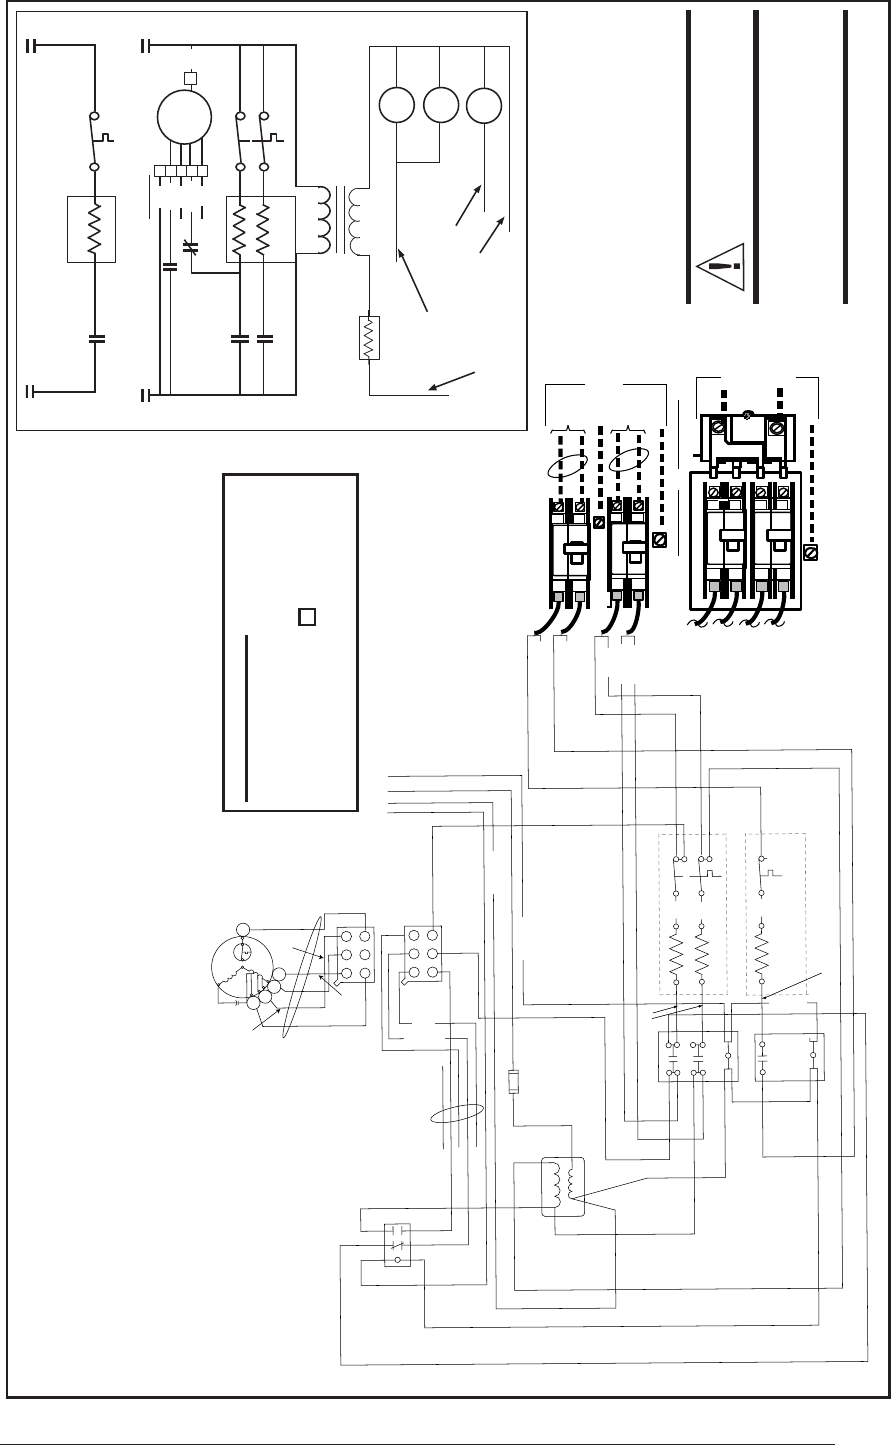 3da81ad6 f192 4a9e b623 79207b82e4c7 bg19 nordyne air handler wiring diagram heat amana air handler wiring air handler wiring diagram at n-0.co